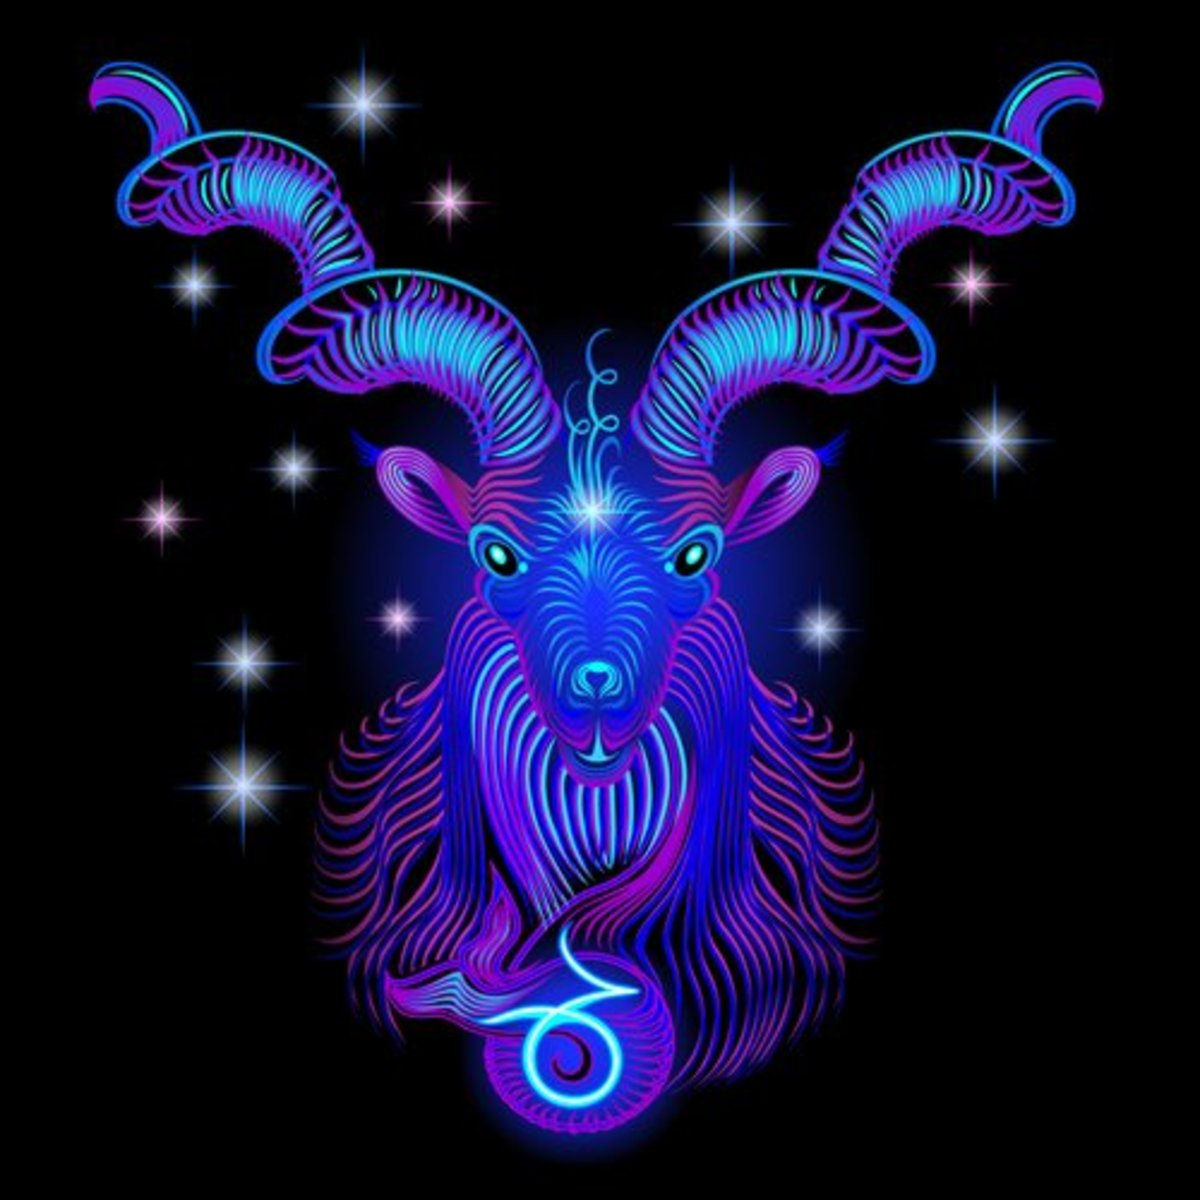 Capricorn is infused with authority, stability and financial expertise